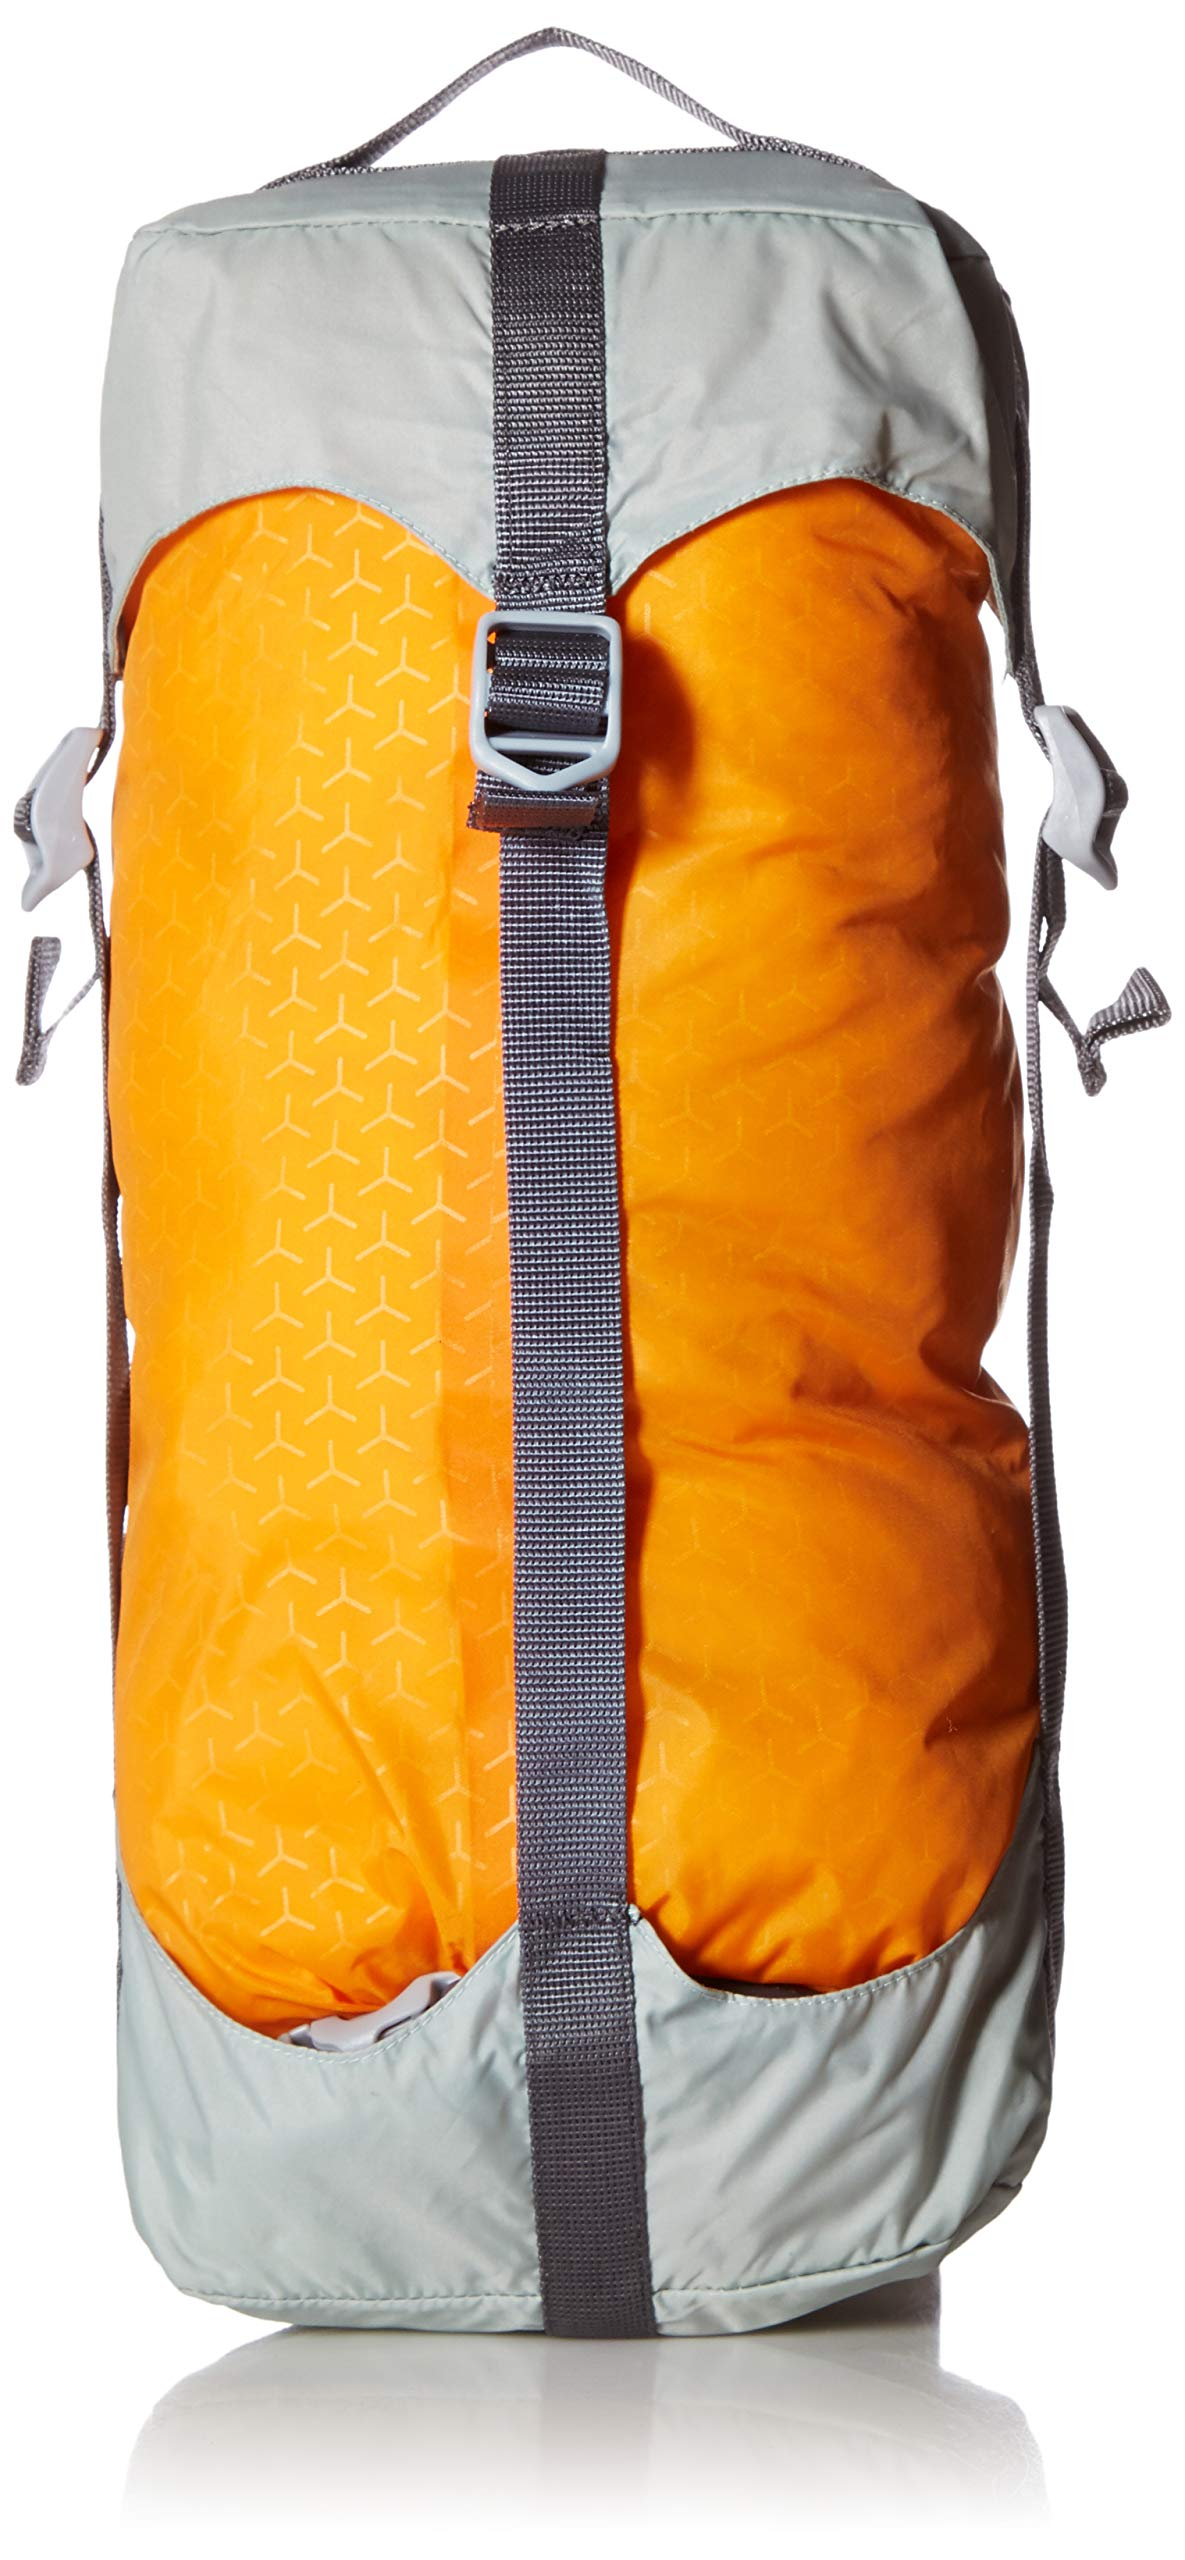 SealLine Blocker Compression Dry Sack Waterproof Stuff Sack, Orange, 20-Liter by SealLine